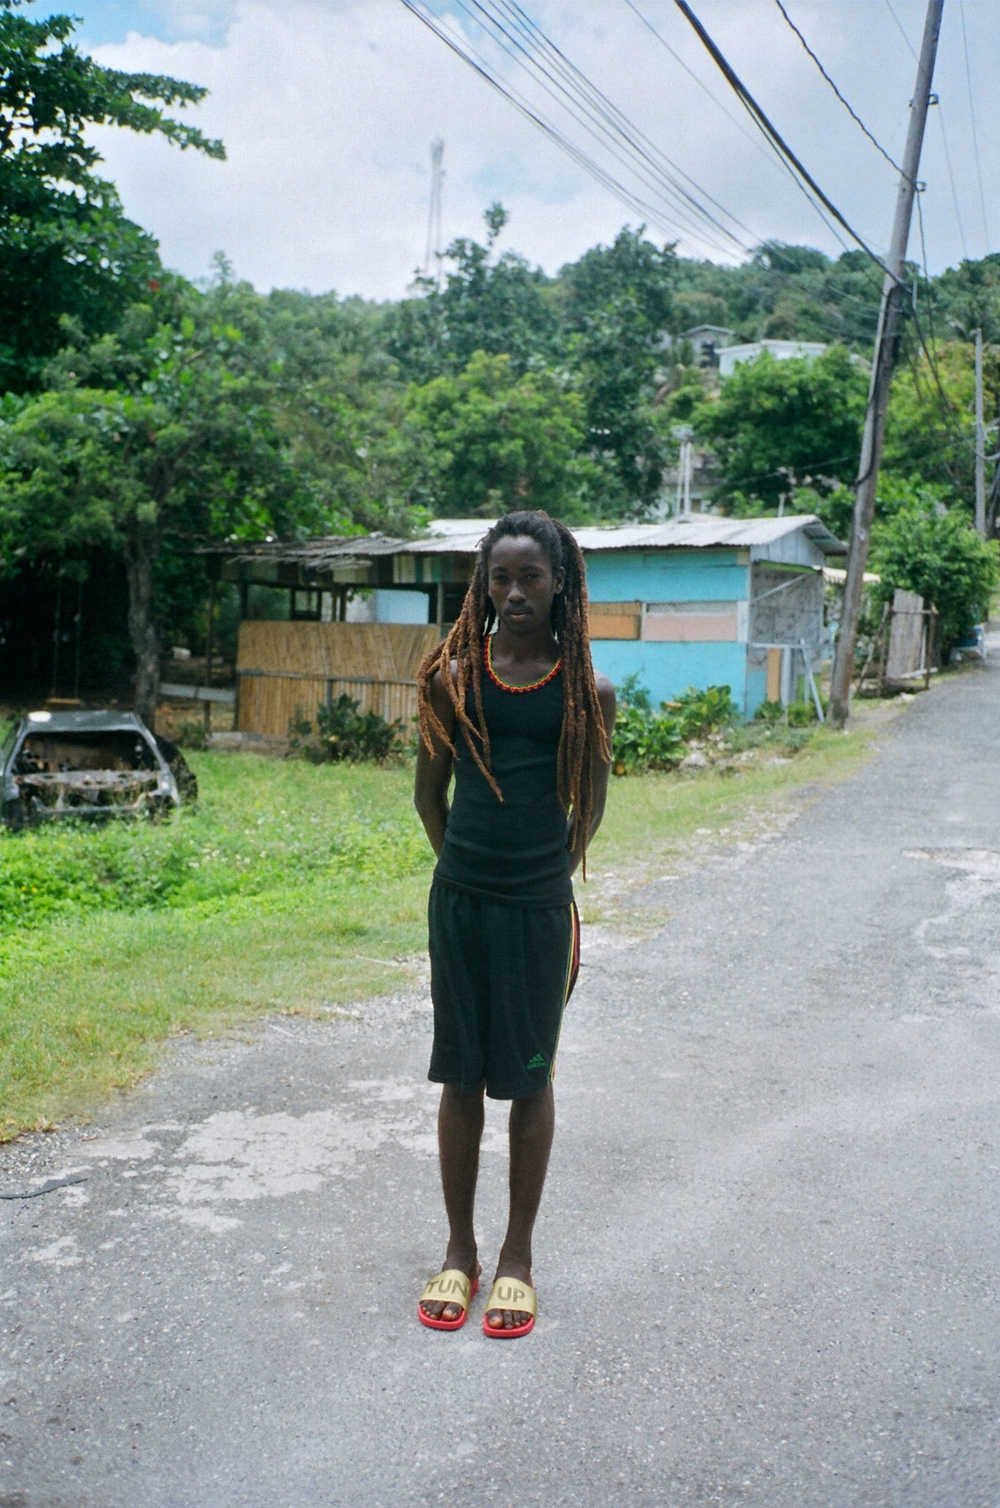 """Prince """"He lives in Drapers, where I am from in Jamaica. I have known him as a likkle youth. He has always been quiet towards me and just smiles :) this may be a young crush but he definitely runs the younger generations in the area. His fadah is called KING."""""""